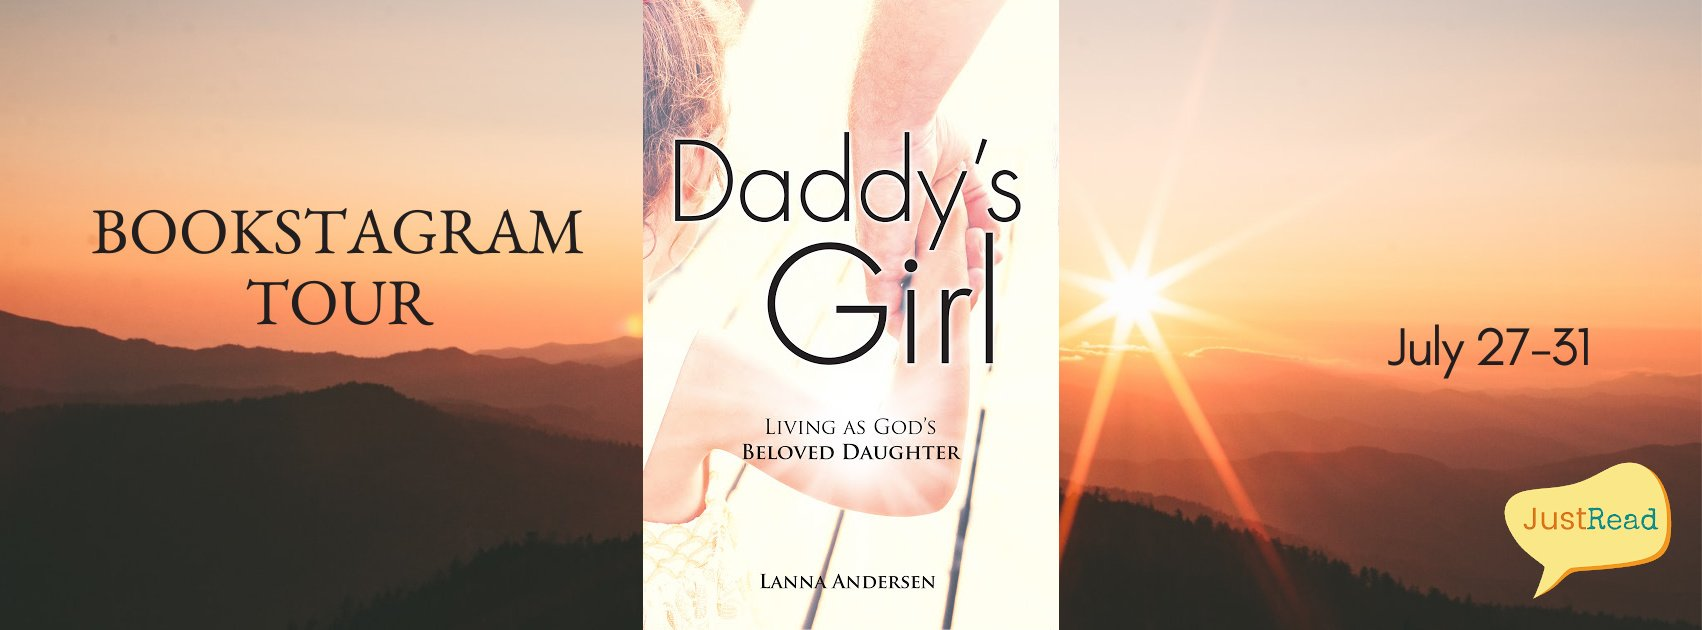 Daddy's Girl JustRead Bookstagram Tour